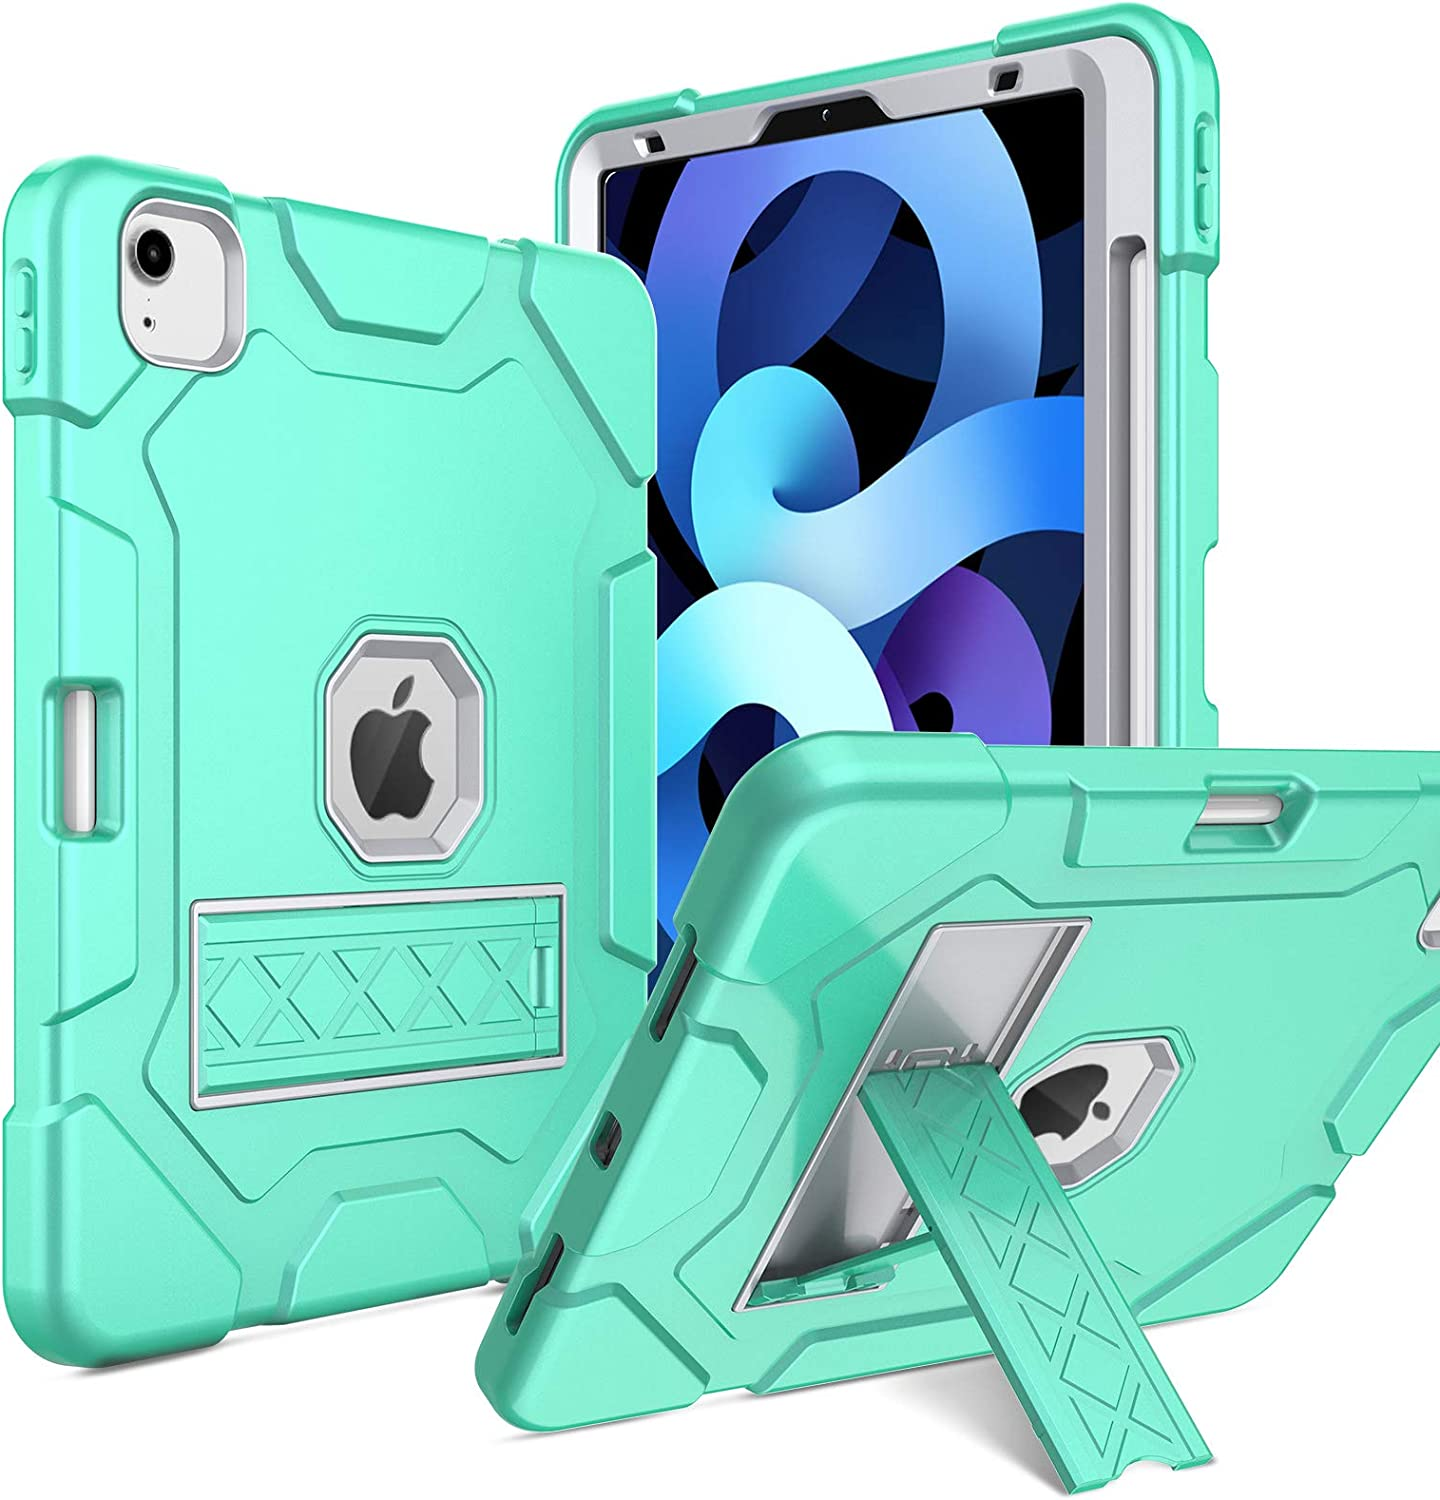 Elegant Choise New iPad Air 4th Gen 10.9 inch 2020 Case, iPad Pro 11 Case 2020/2018 Support Apple Pencil 2nd Gen Charging,Hybrid Three Layer Full Body Rugged Protective Case Cover